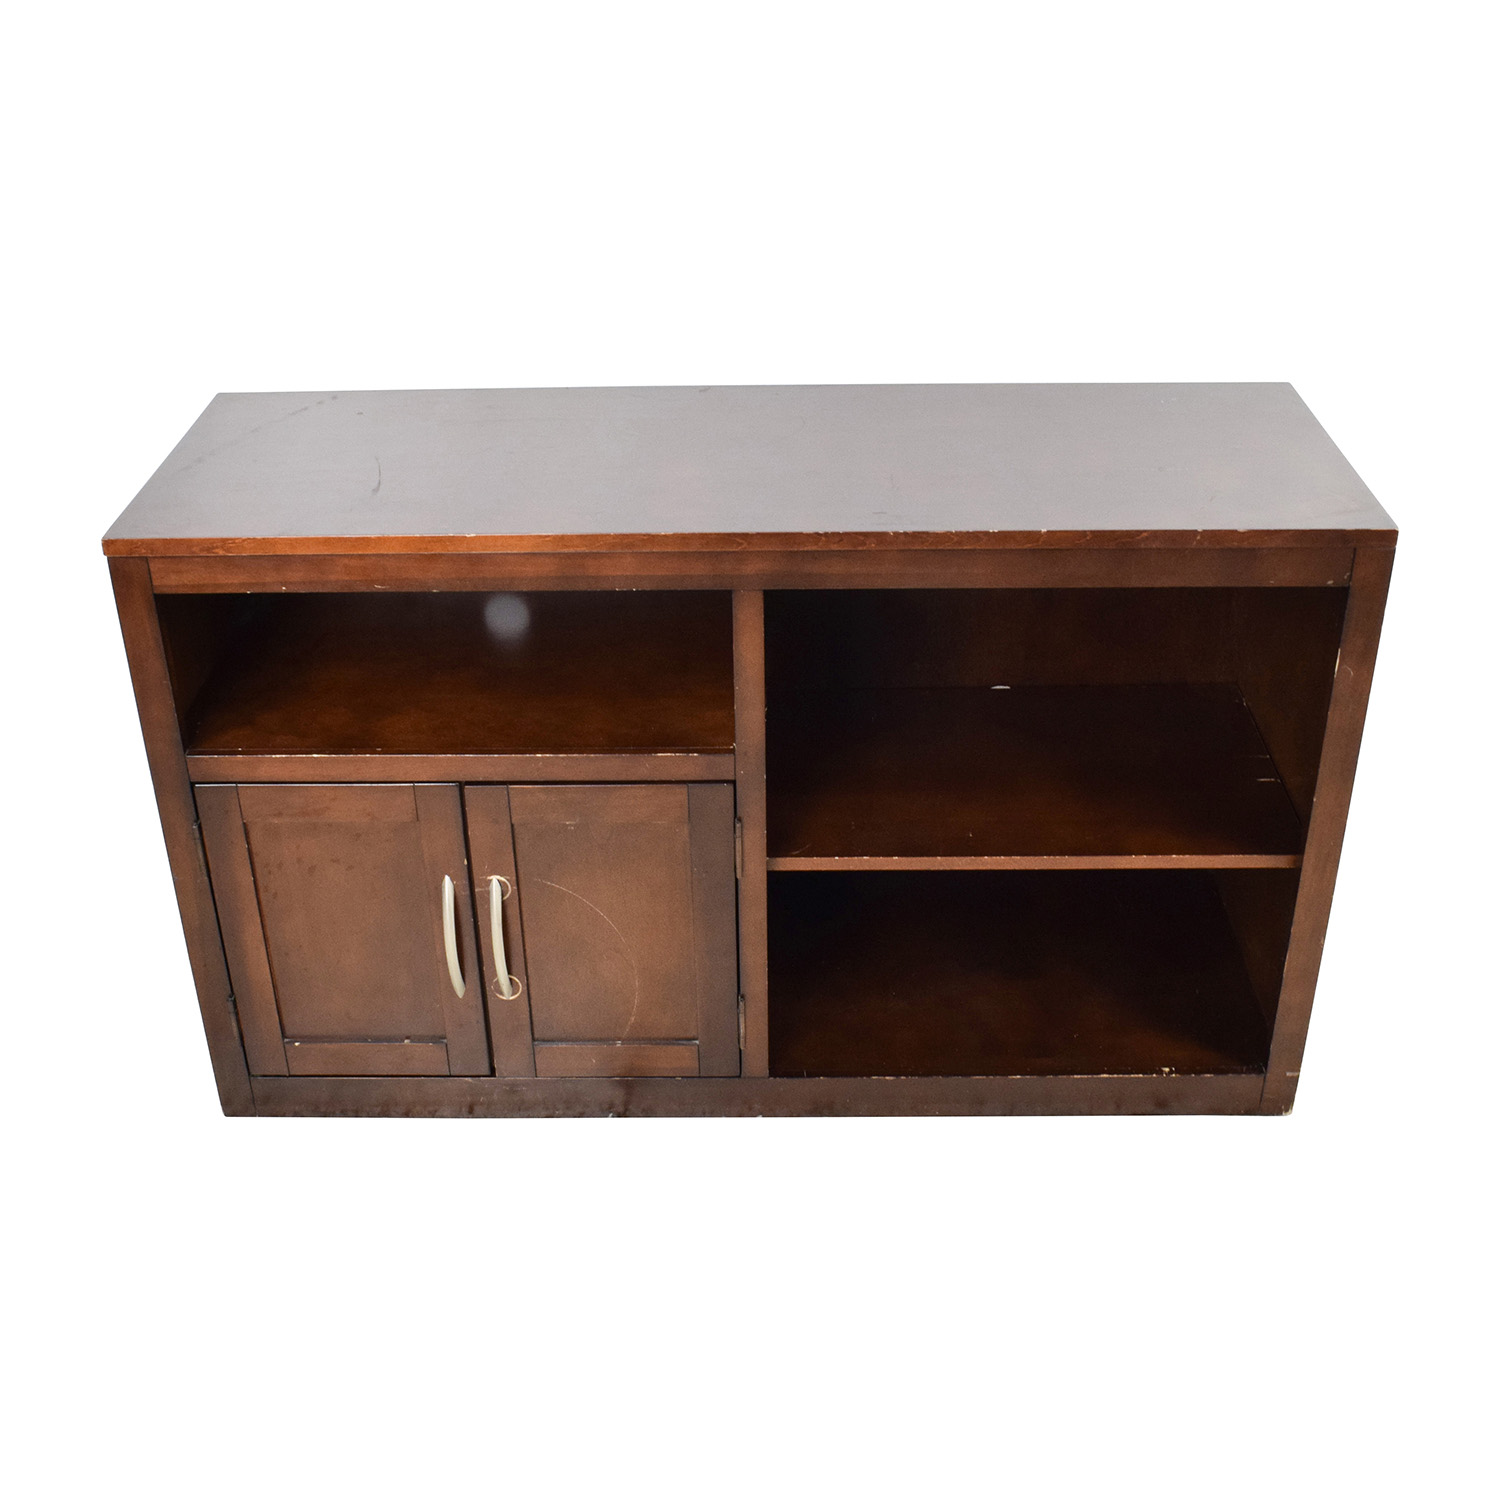 buy Wood TV Shelf Media Cabinet Unkown